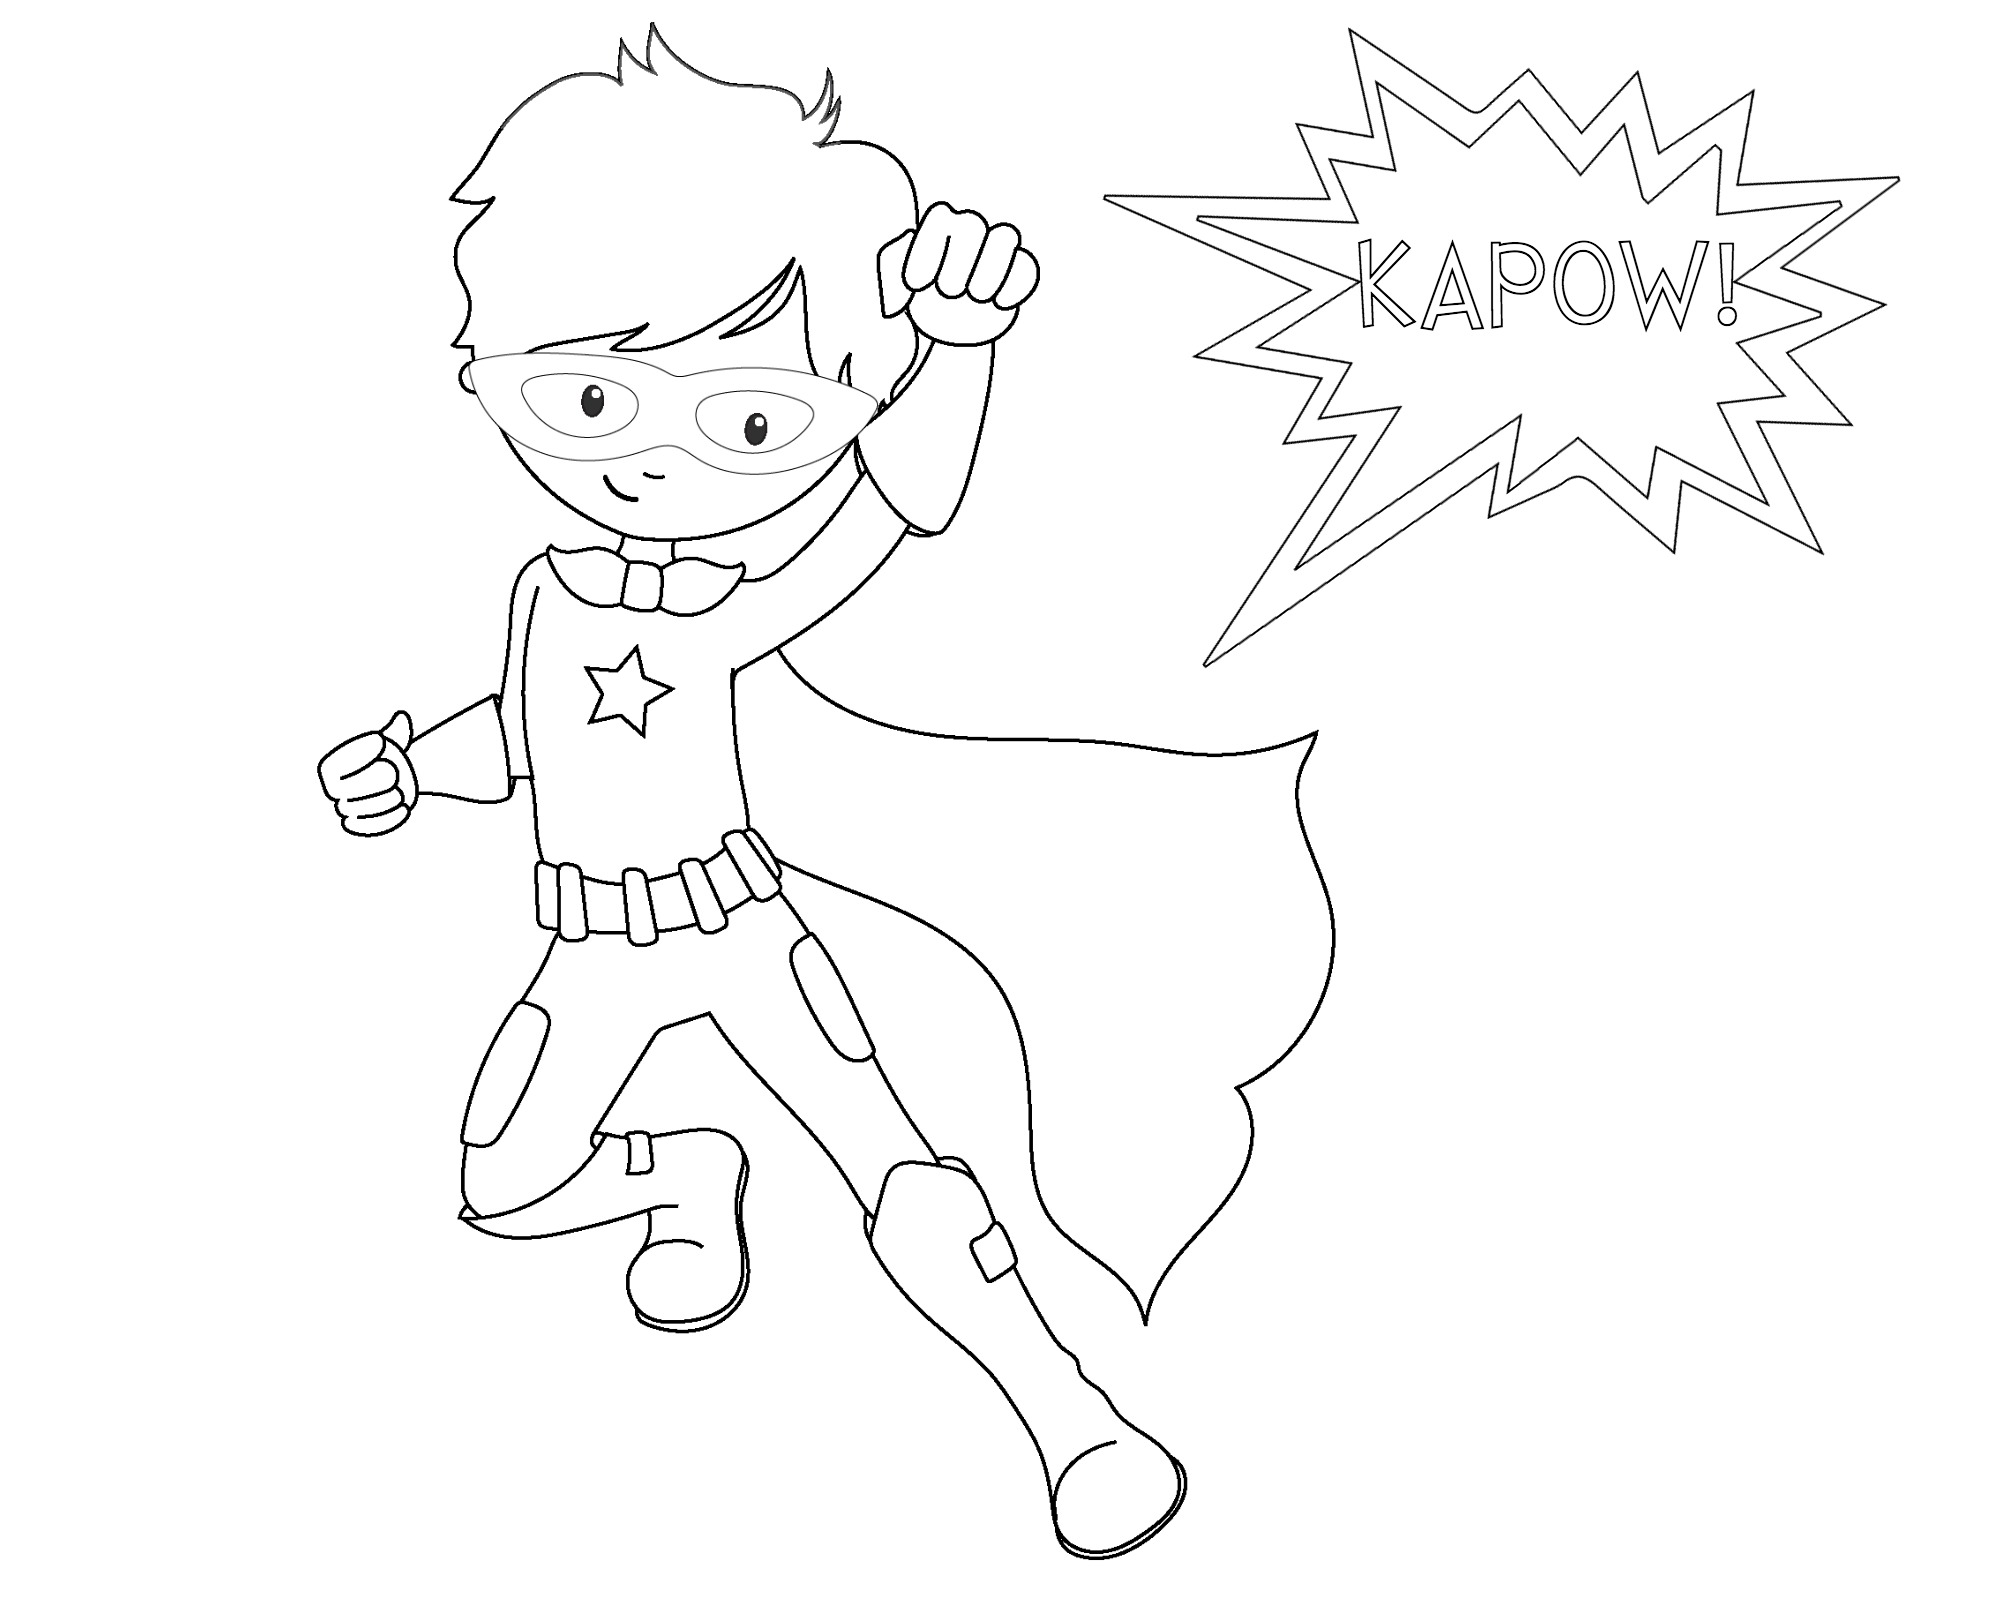 graphic relating to Superhero Coloring Pages Printable known as Totally free Printable Superhero Coloring Sheets for Children - Ridiculous